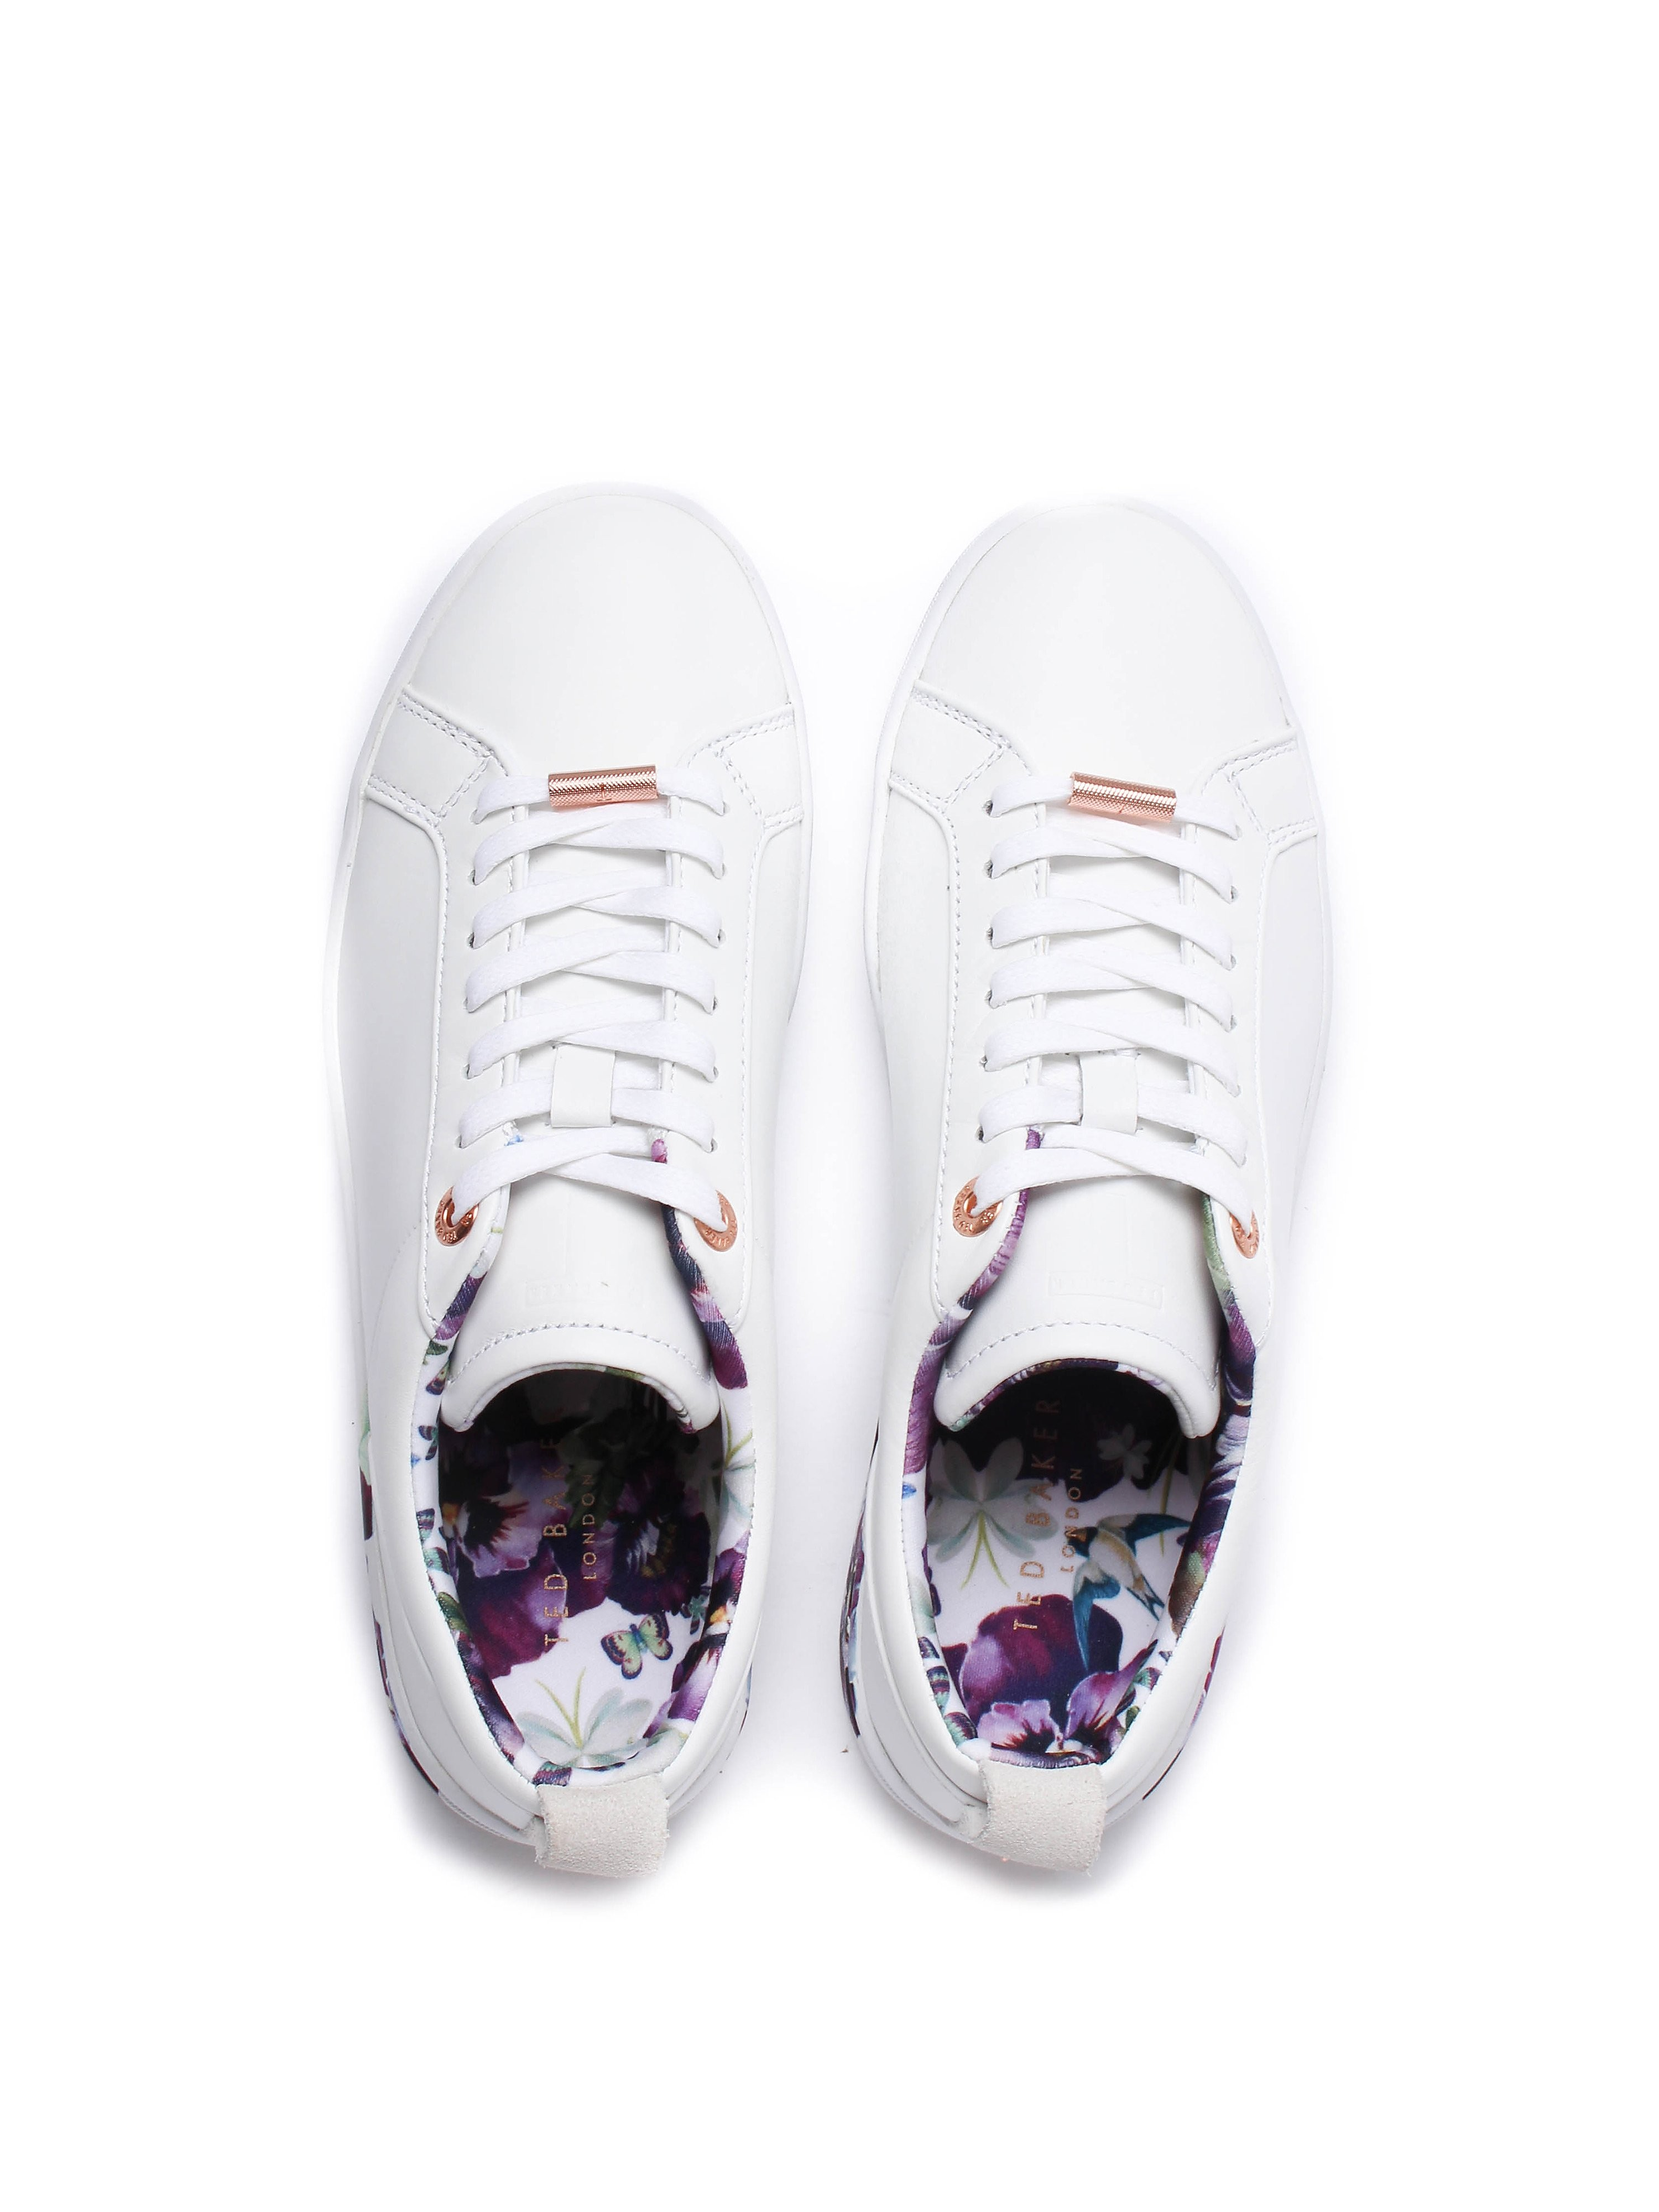 Ted Baker Women's Barrica Printed Sole Leather Trainers - White